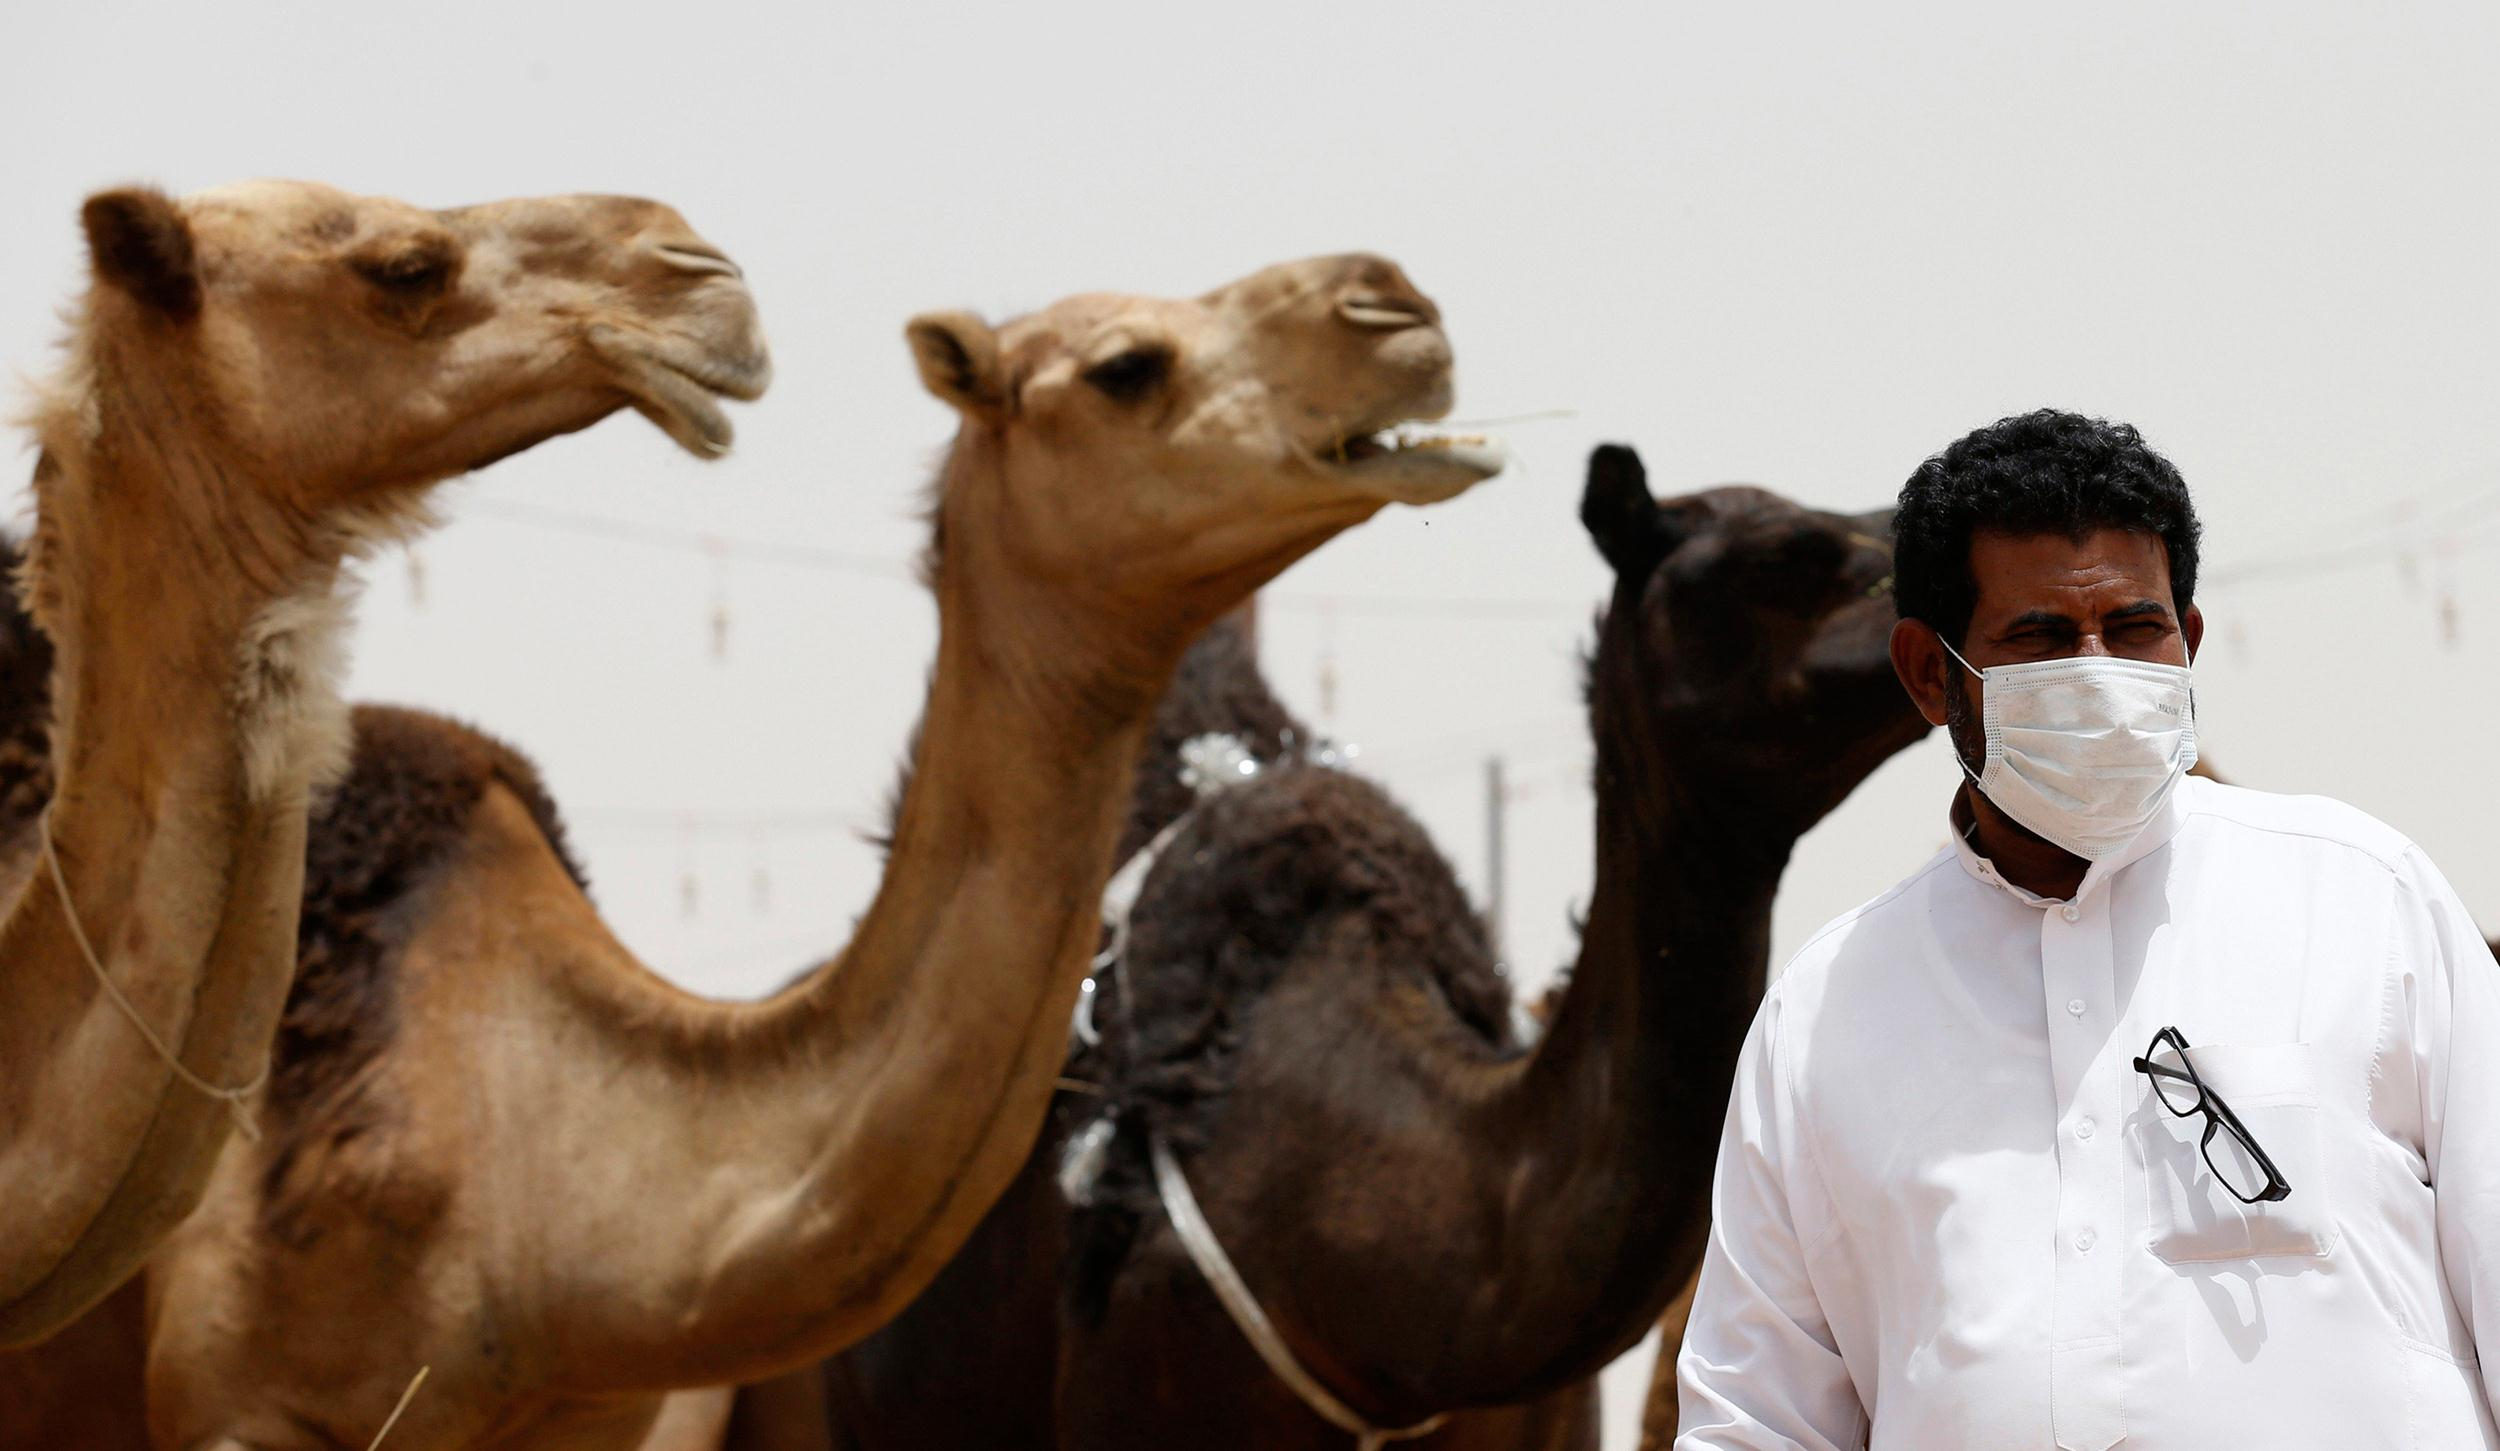 Image: A man wearing a mask looks on as he stands in front of camels at a camel market in the village of al-Thamama near Riyadh